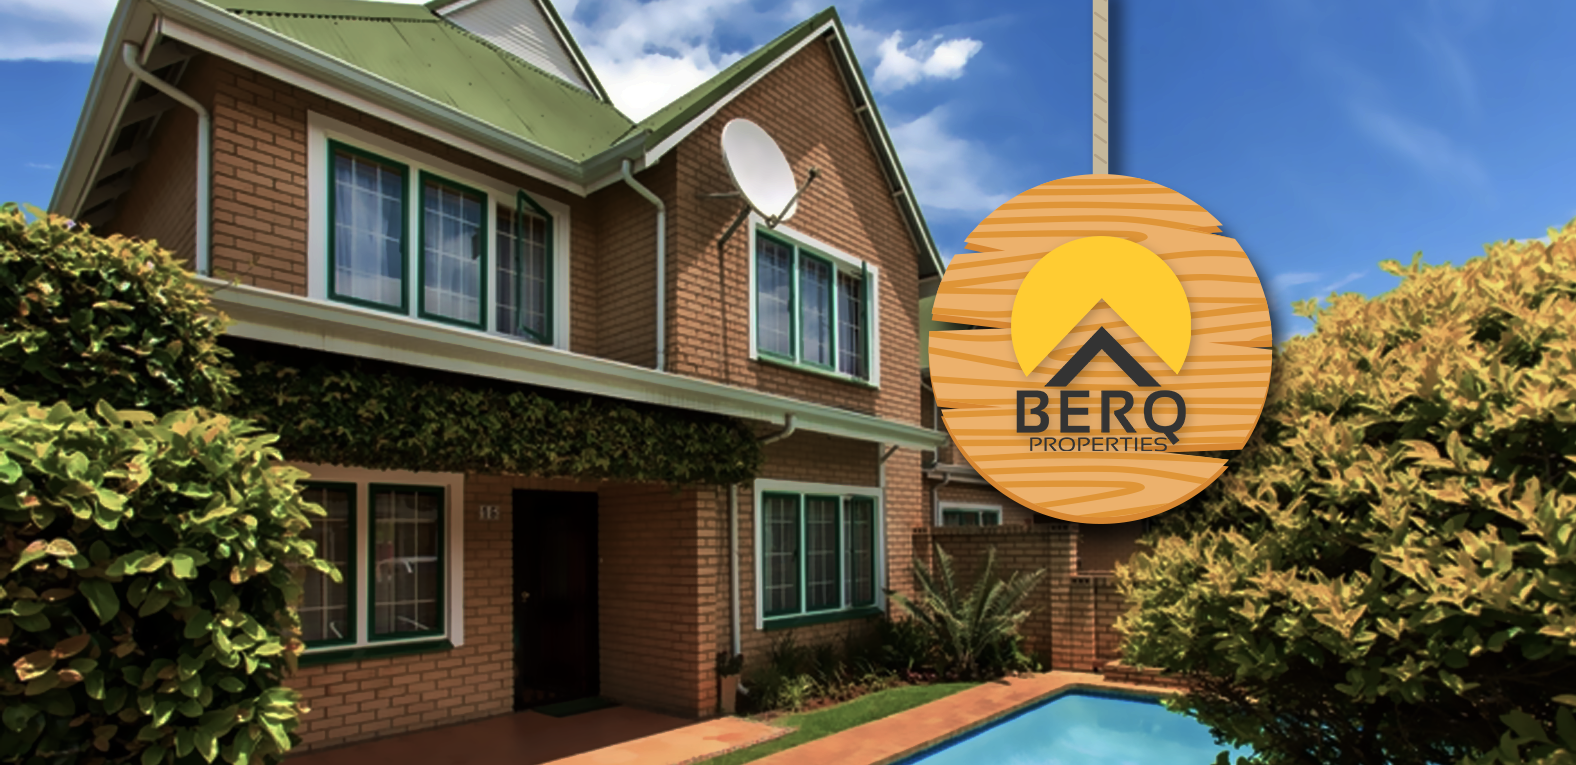 1 Berq properties casestudies images